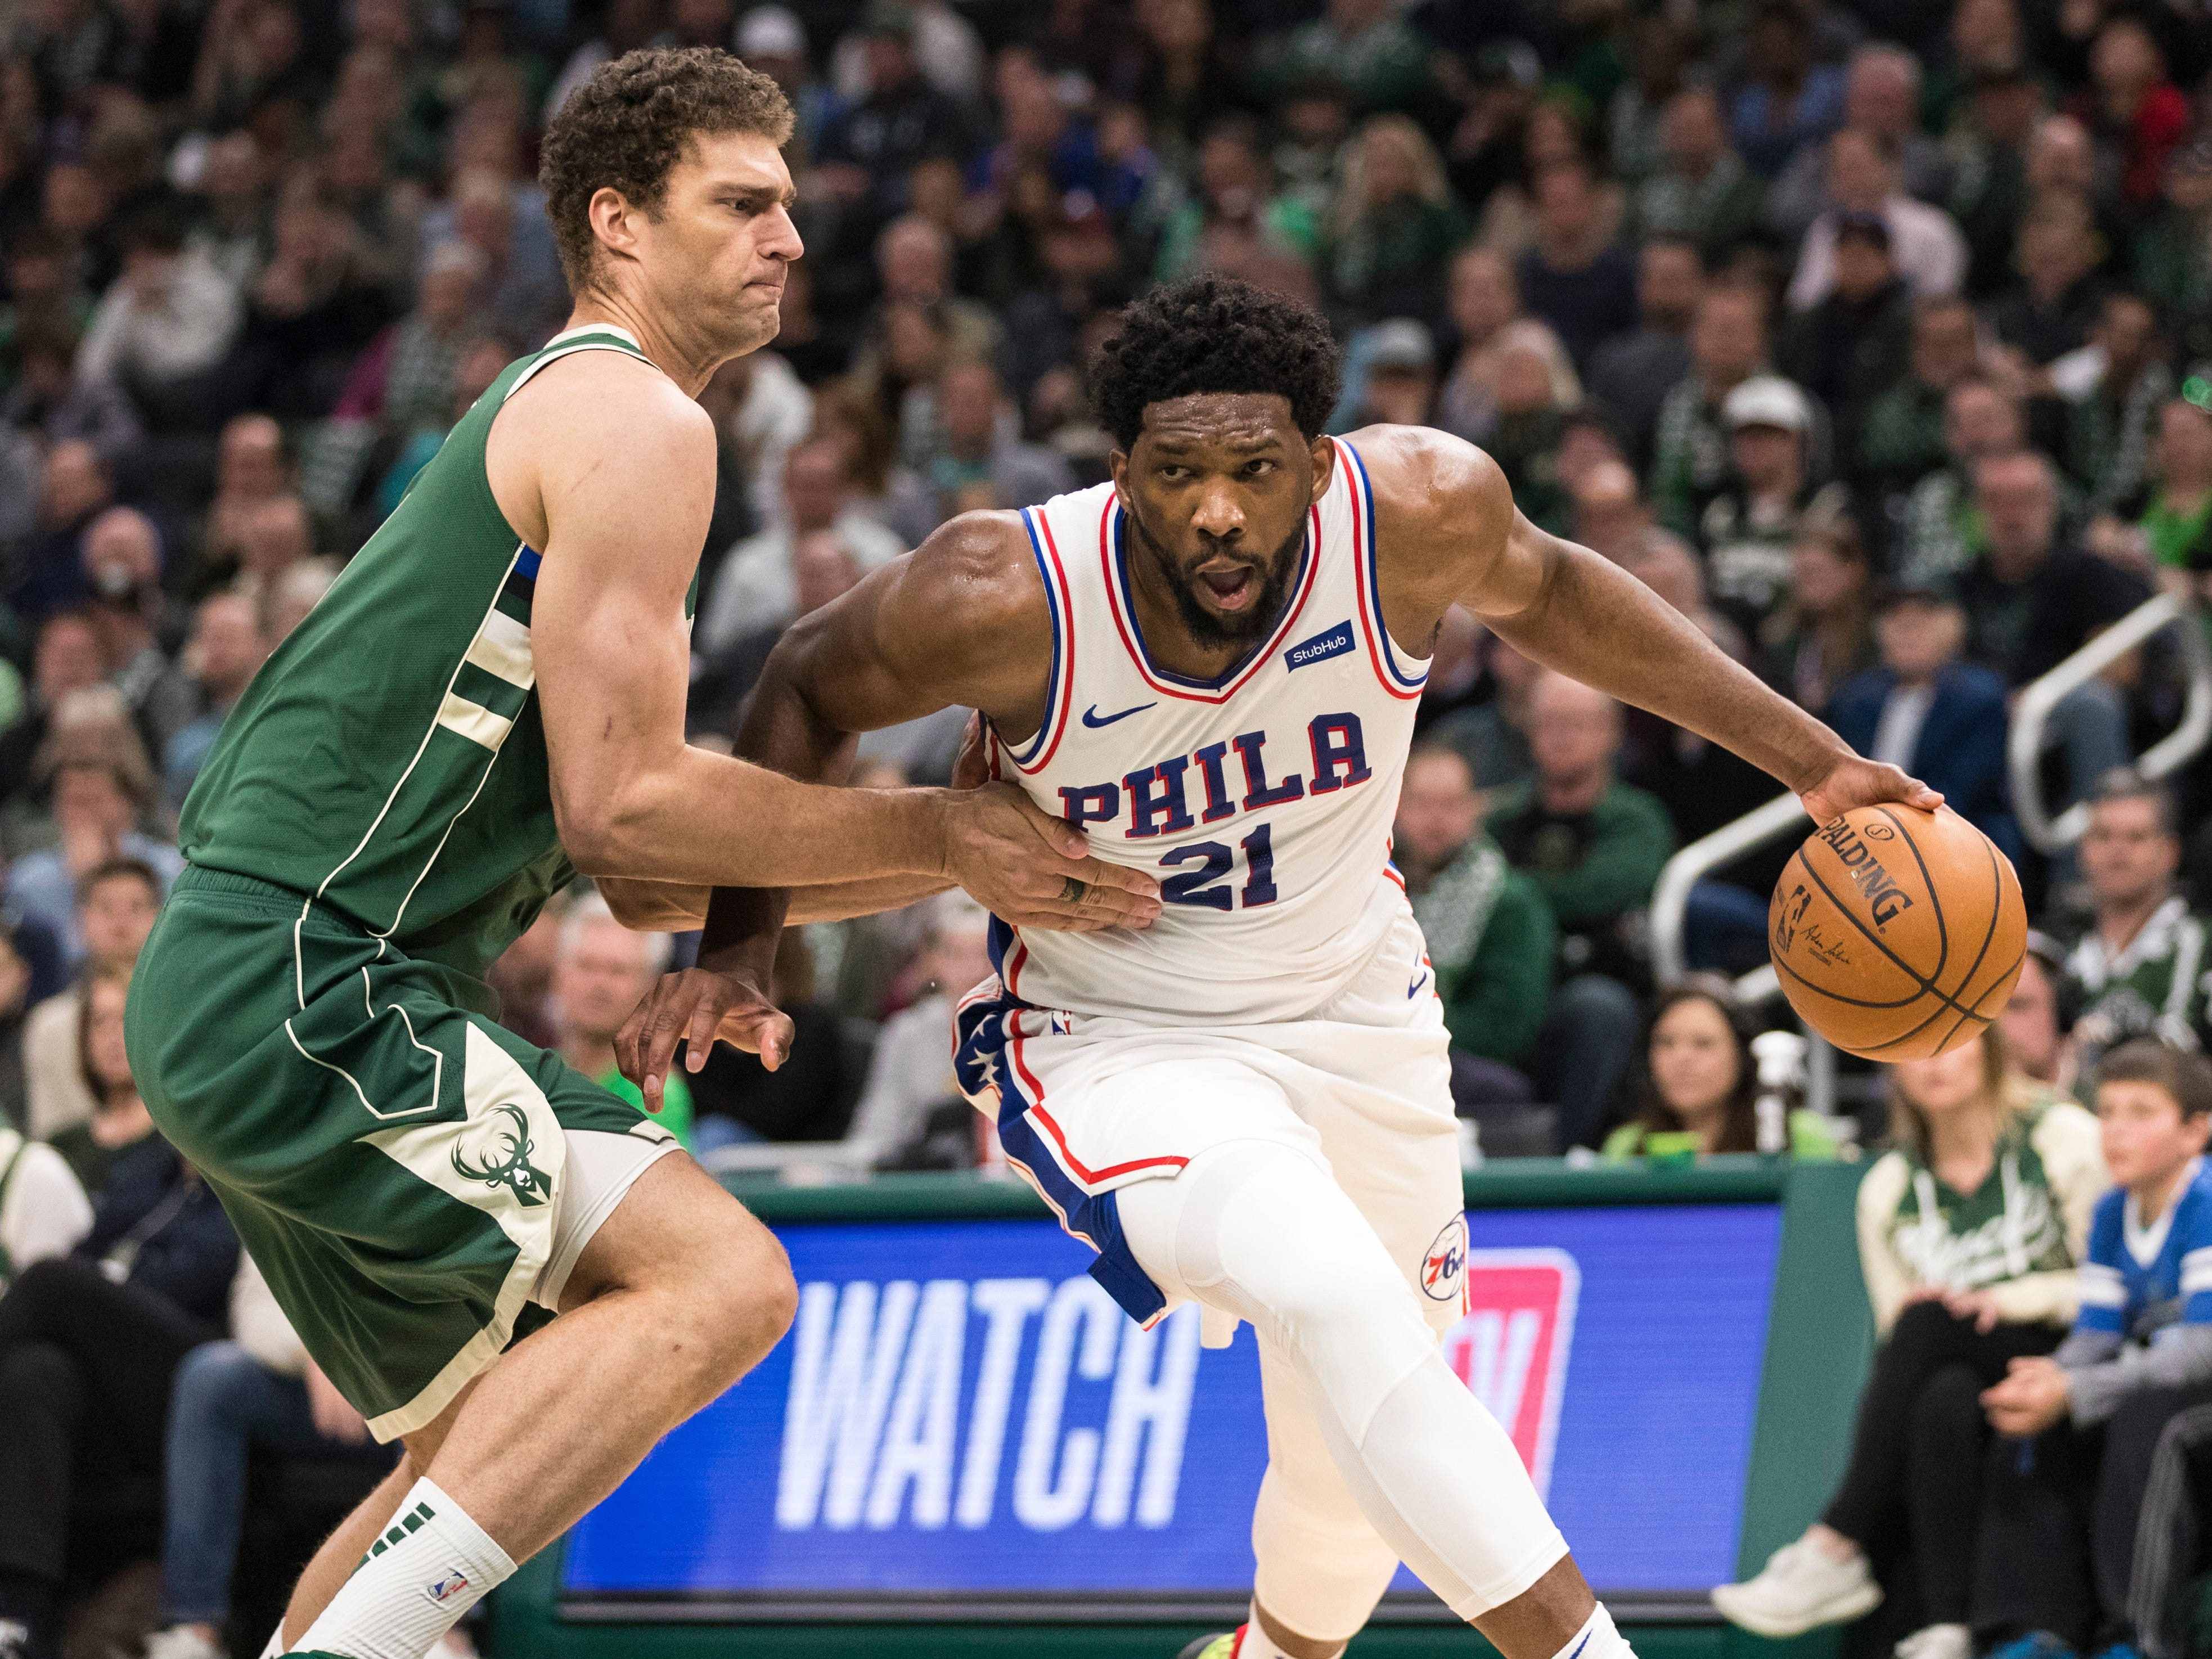 Brook Lopez and the rest of the Bucks had a tough time stopping 76ers center Joel Embiid as he scored 40 points and grabbed 15 rebounds in Philadelphia's victory.